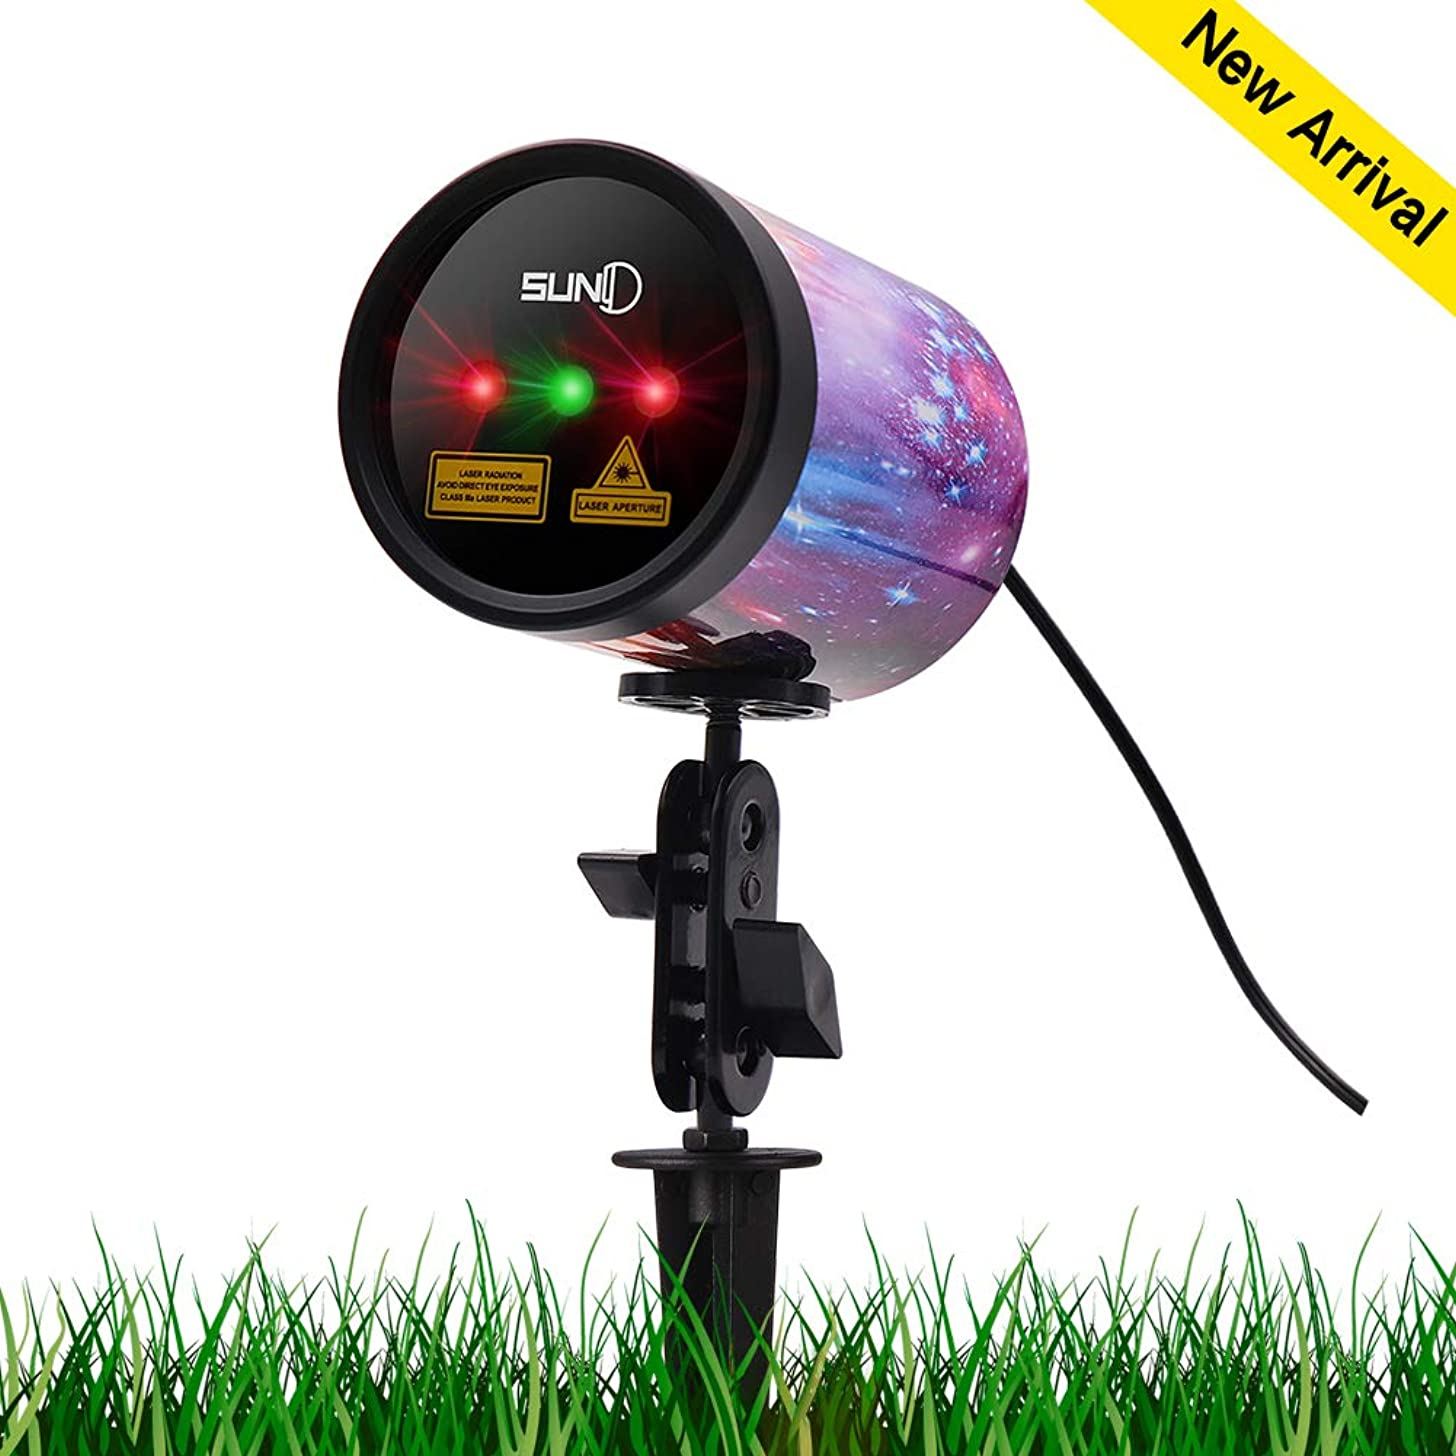 Outdoor Laser Light SUNY 3 Lens Christmas Laser Projection Red Green Color Xmas Theme Projector Landscape Light Color Printed Aluminum Alloy Shell Wide Coverage Waterproof Holiday Party Night Decor